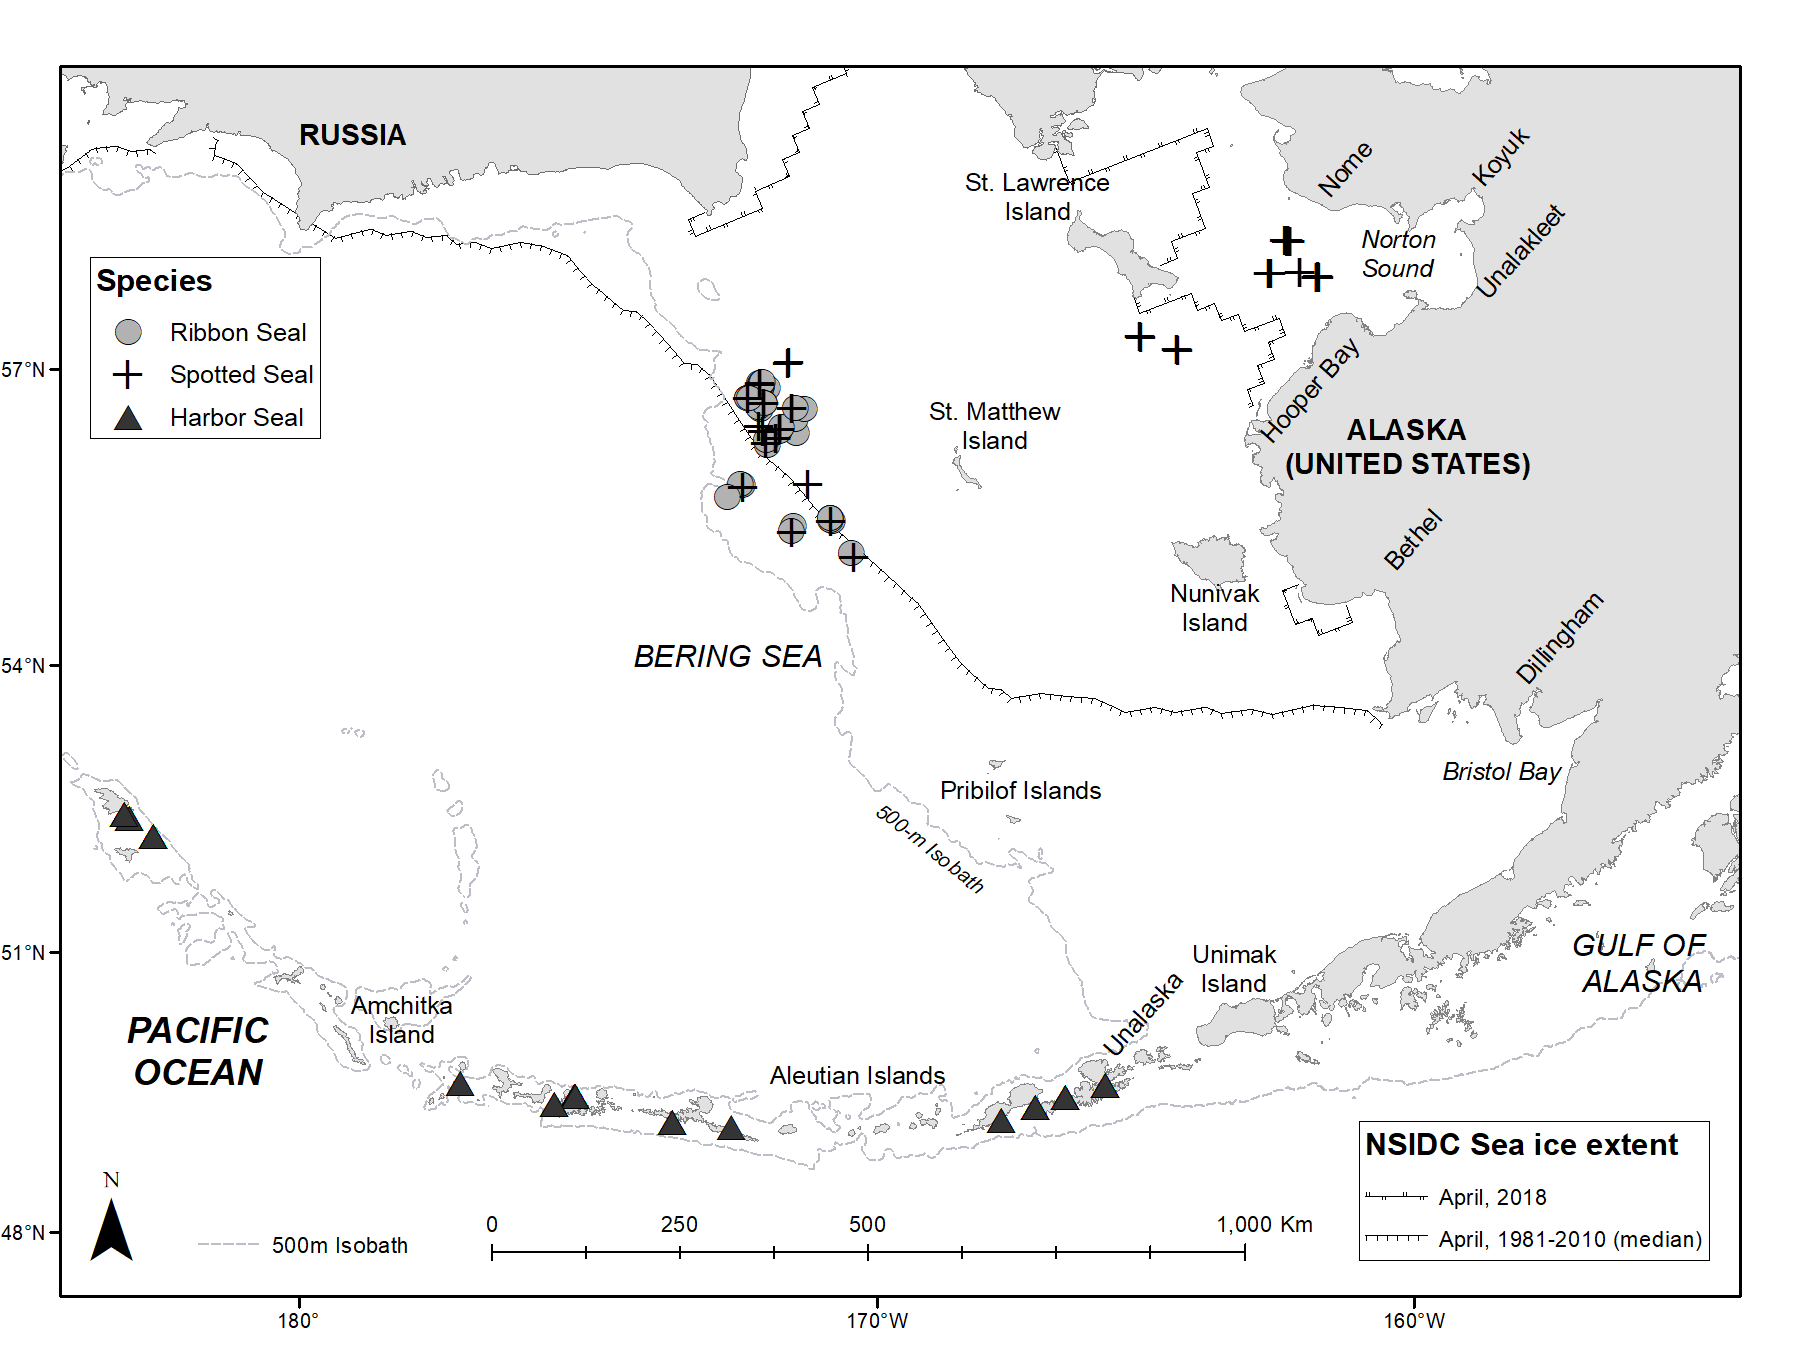 A map of the Bering Sea showing harbor seal, ribbon seal and spotted seal catch and release locations along with April, 1981-2010 median sea ice extent and April, 2018 sea ice extent.